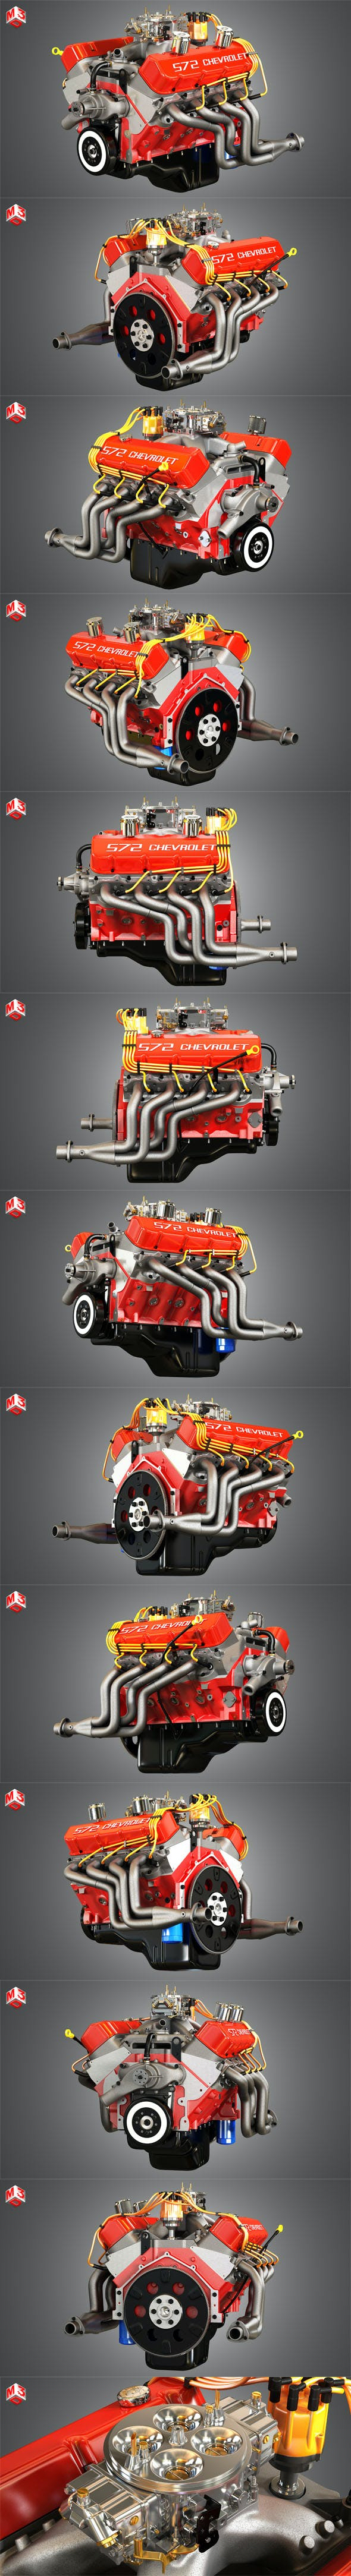 Chevrolet 572 V8 Muscle Engine 3d model - 3DOcean Item for Sale